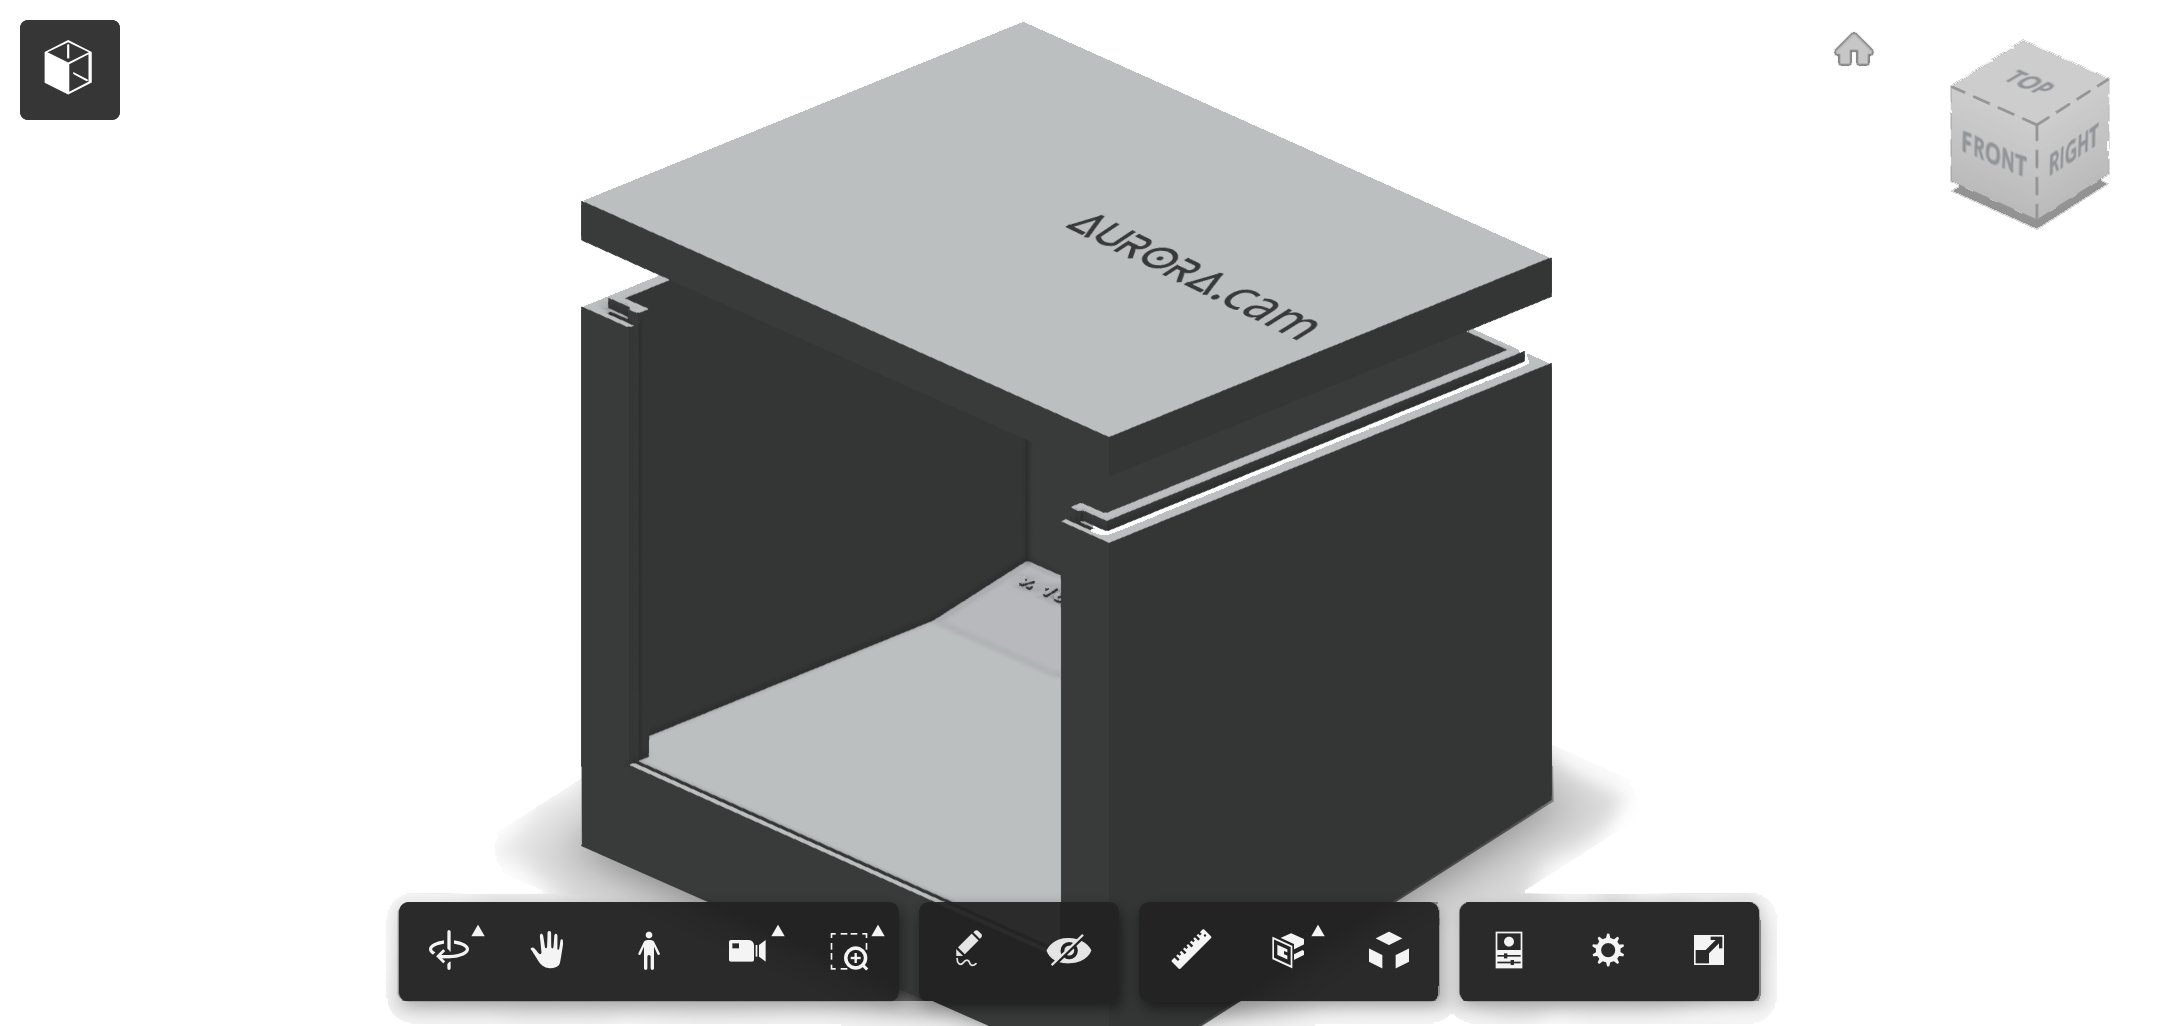 autodesk360 3d weatherproof camera box